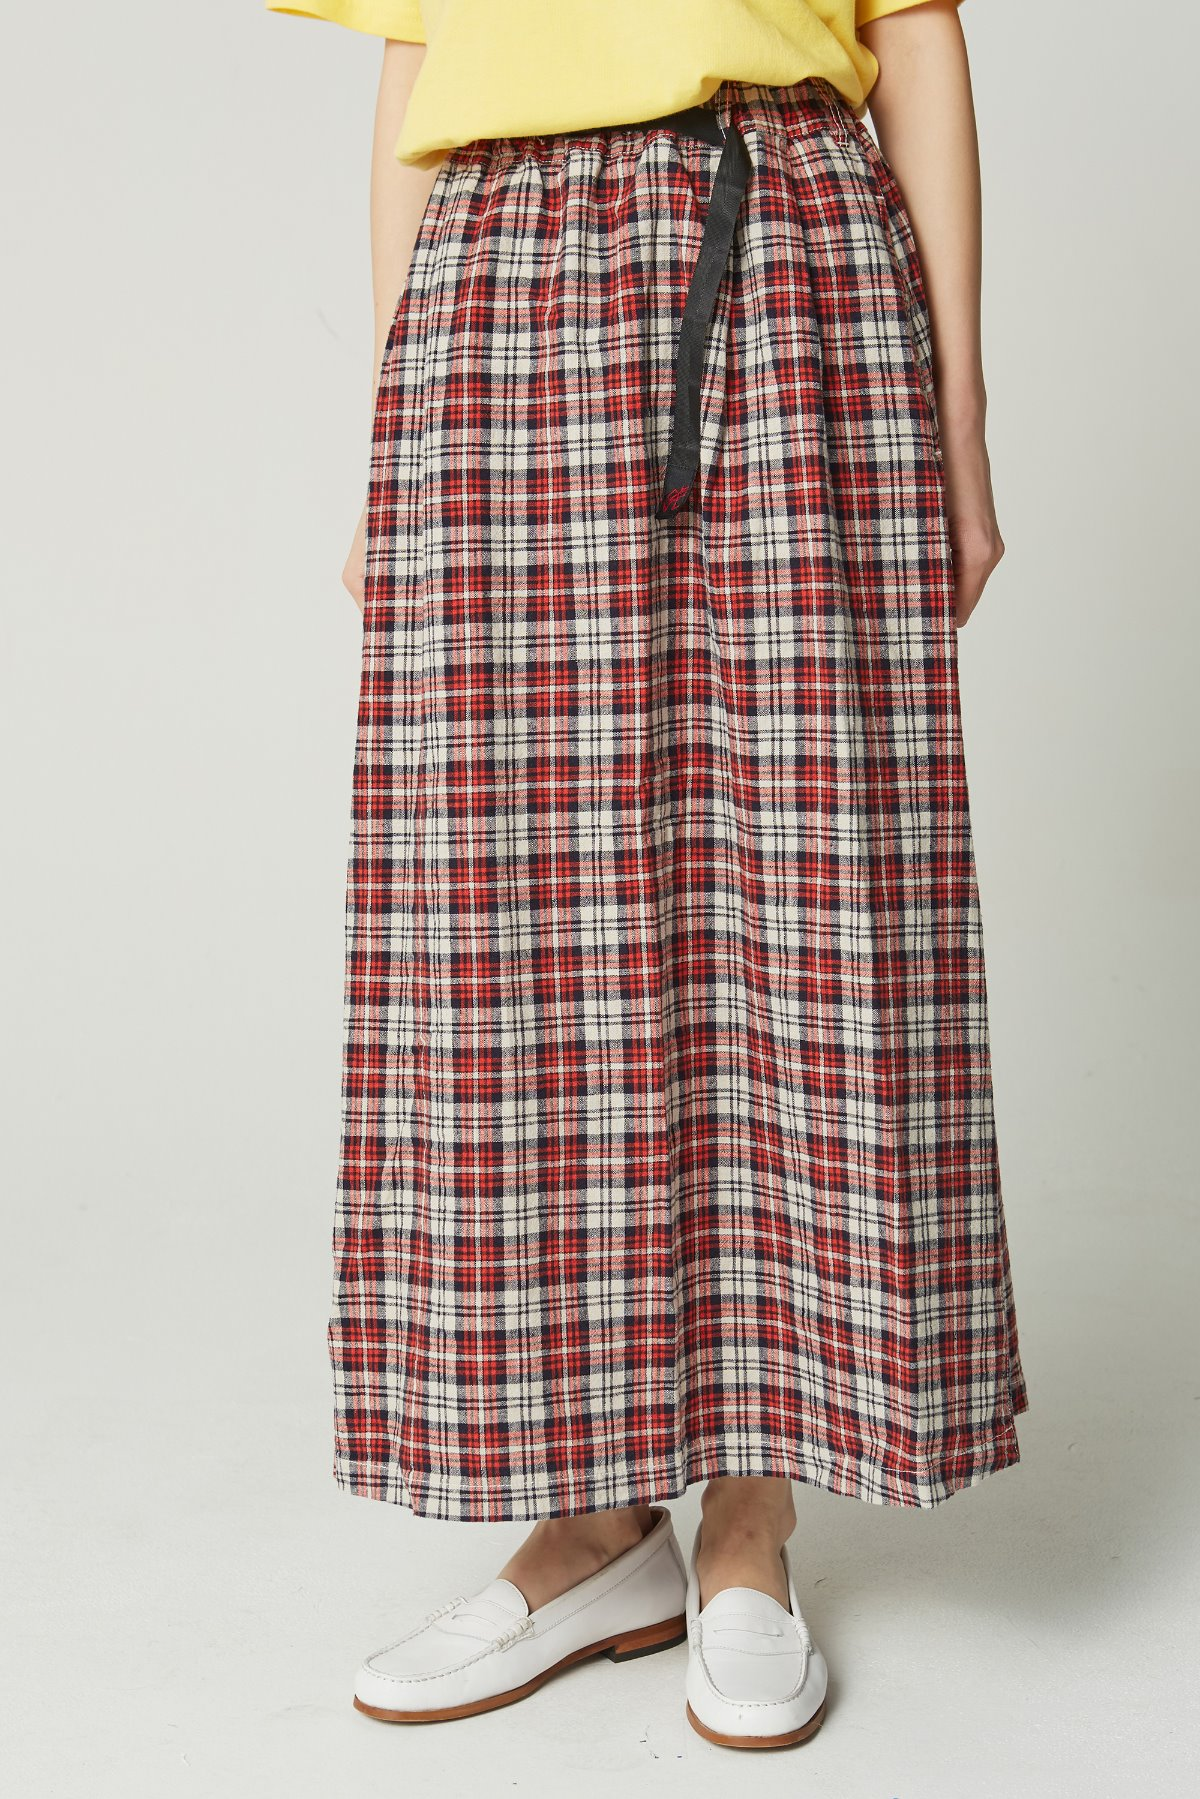 LINEN COTTON LONG FLARE SKIRT MADRAS